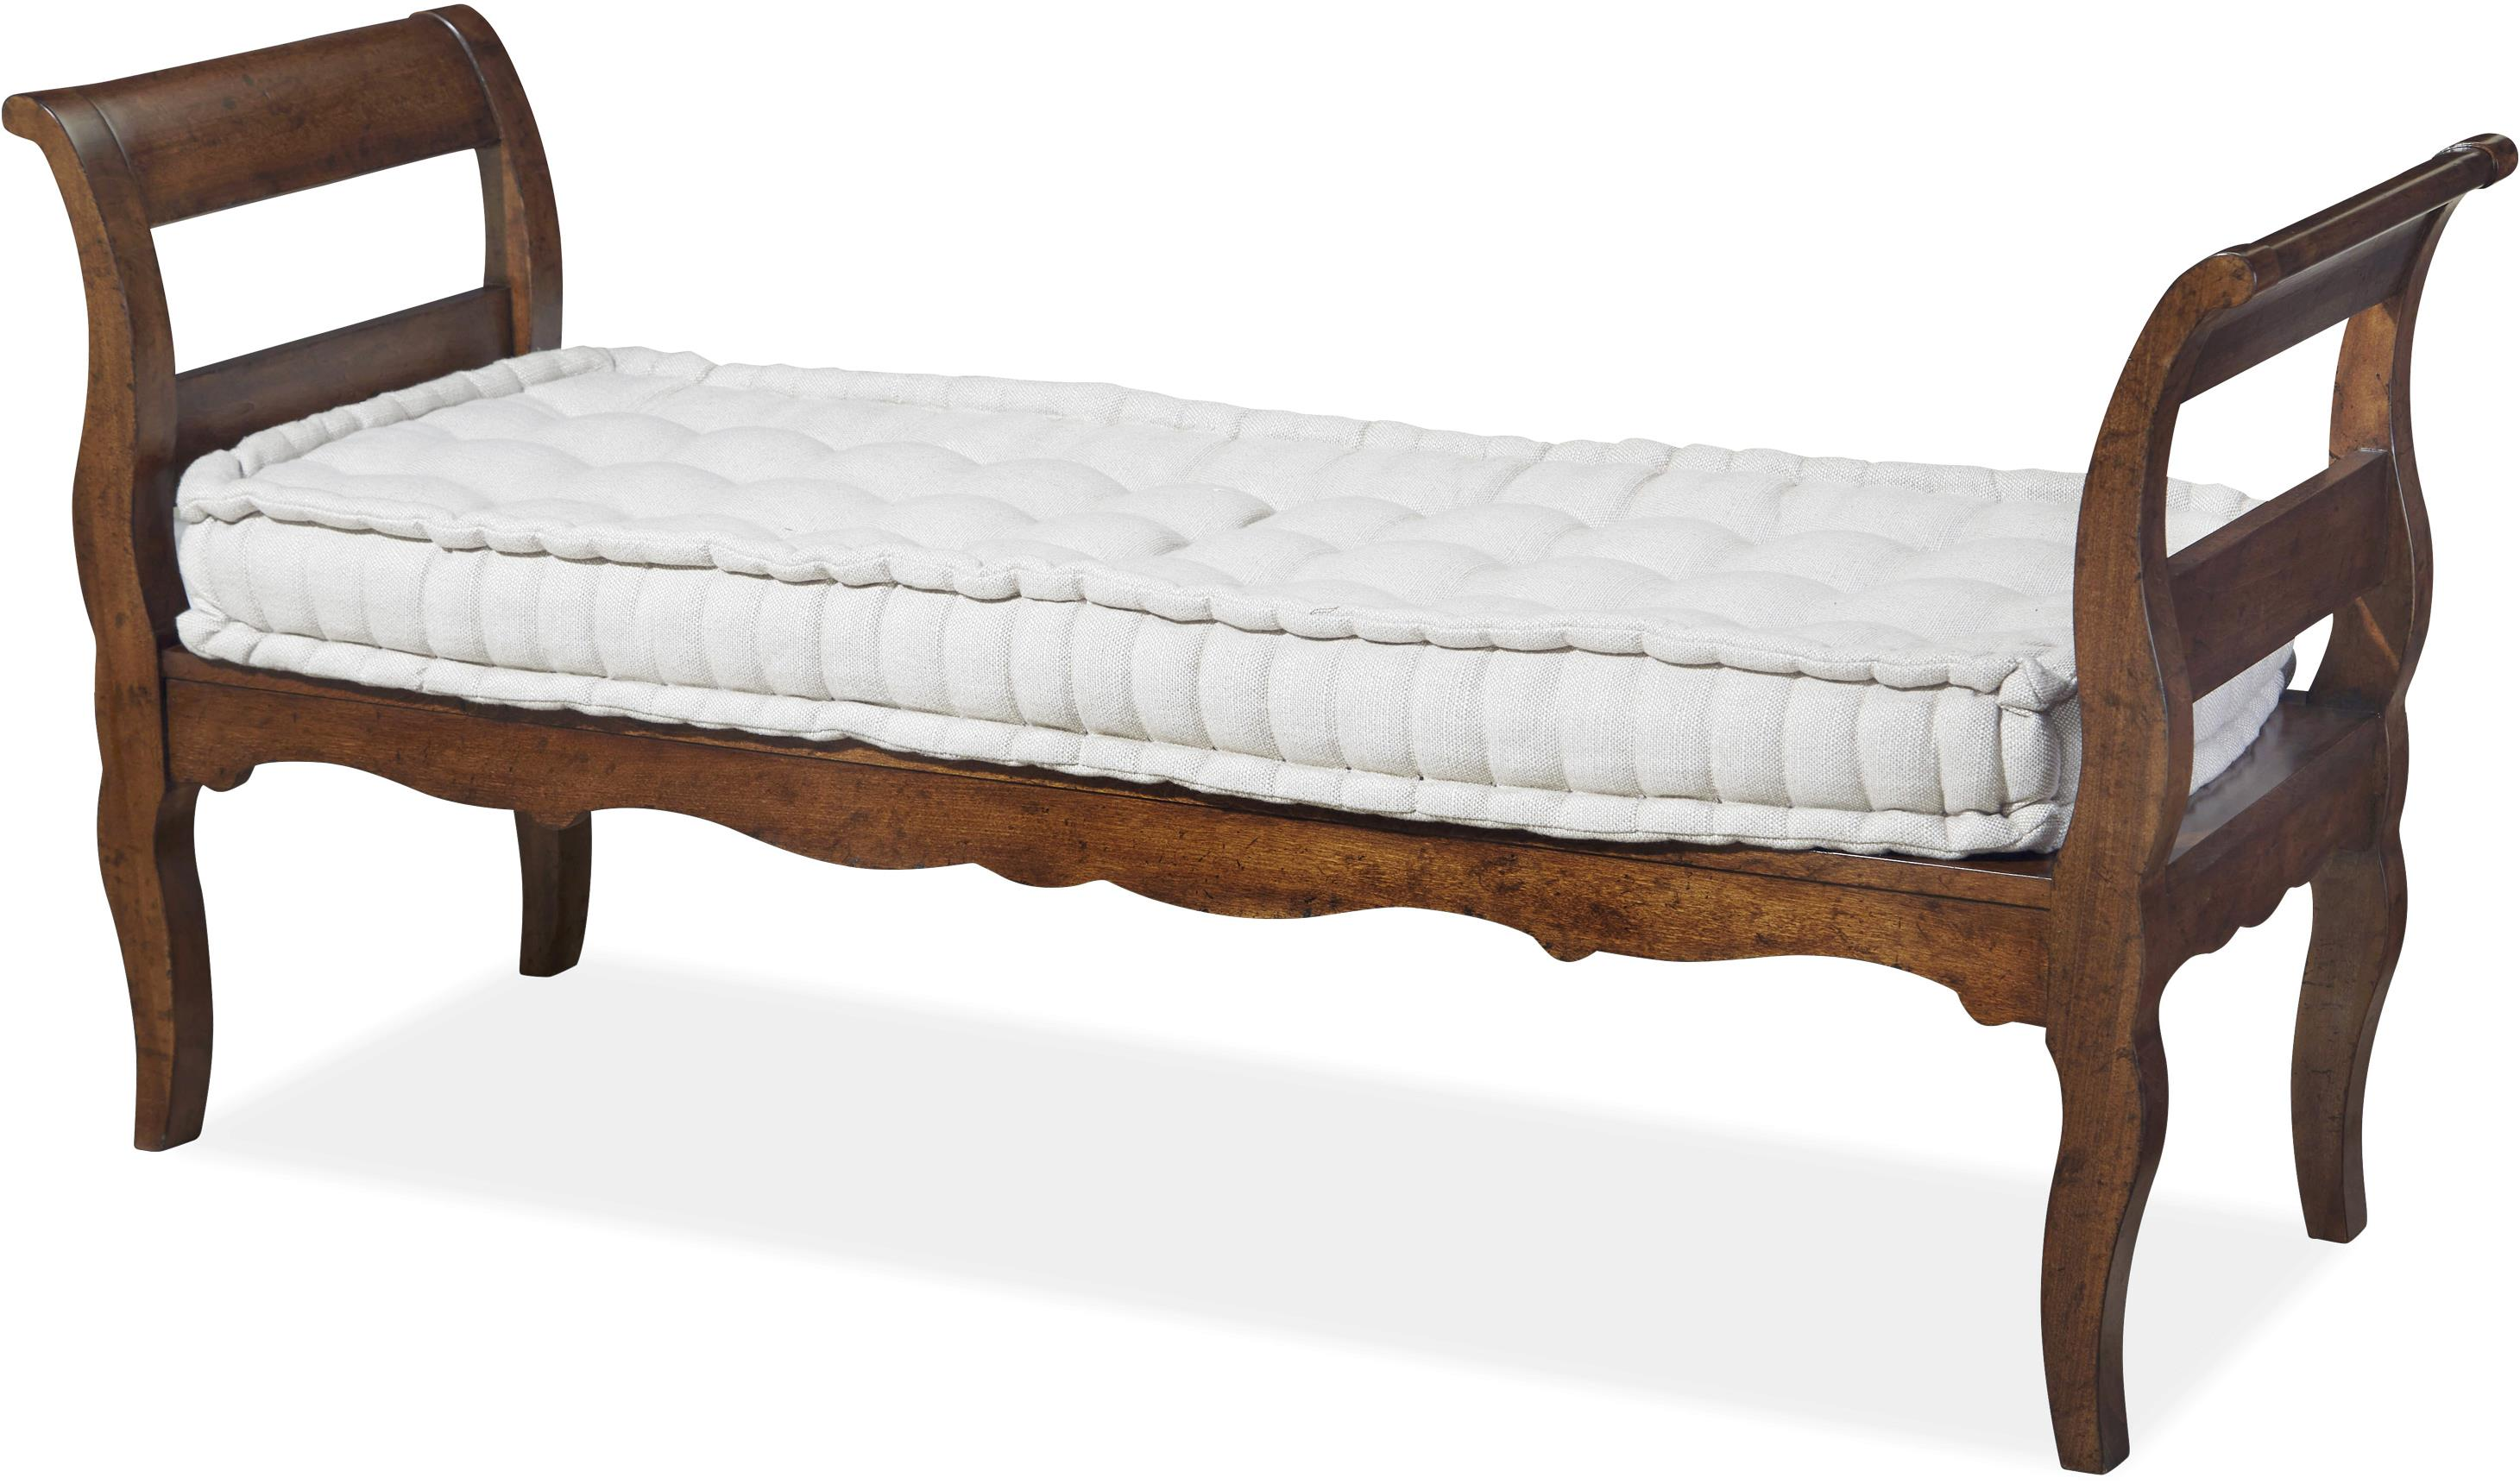 Paula deen by universal dogwood bed end bench with tufted for End of bed chair